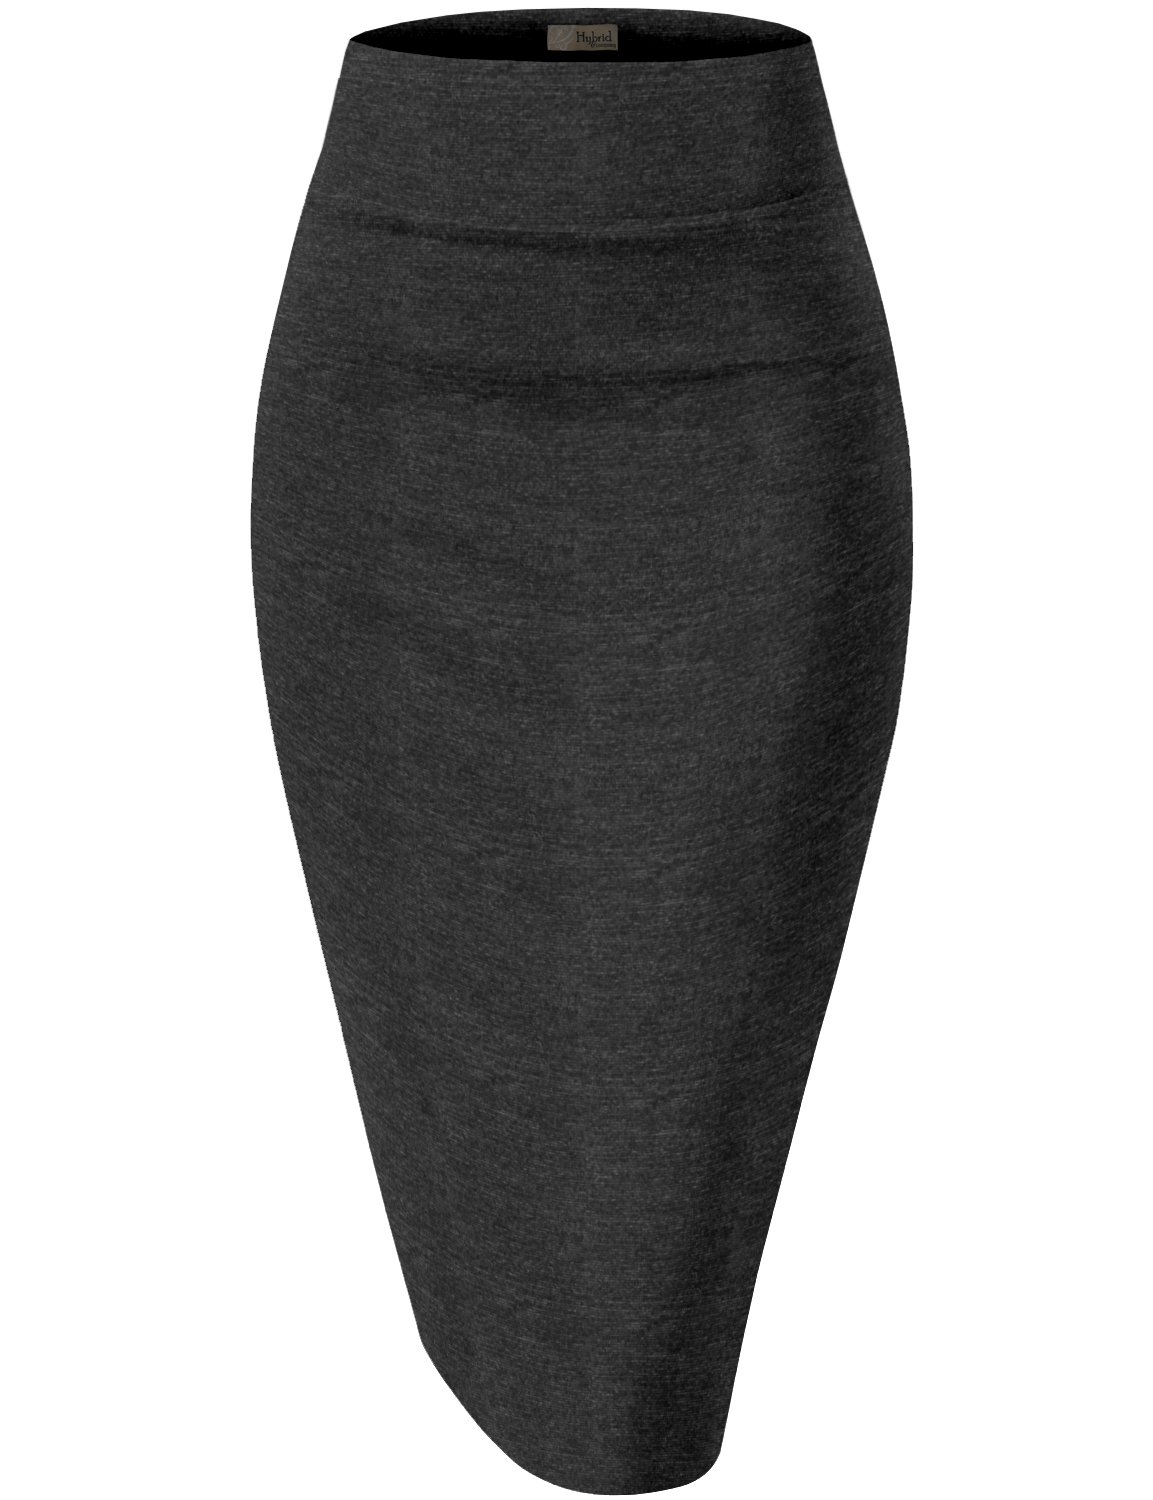 HyBrid & Company Womens Premium Stretch Office Pencil Skirt KSK45002 Charcoal Large